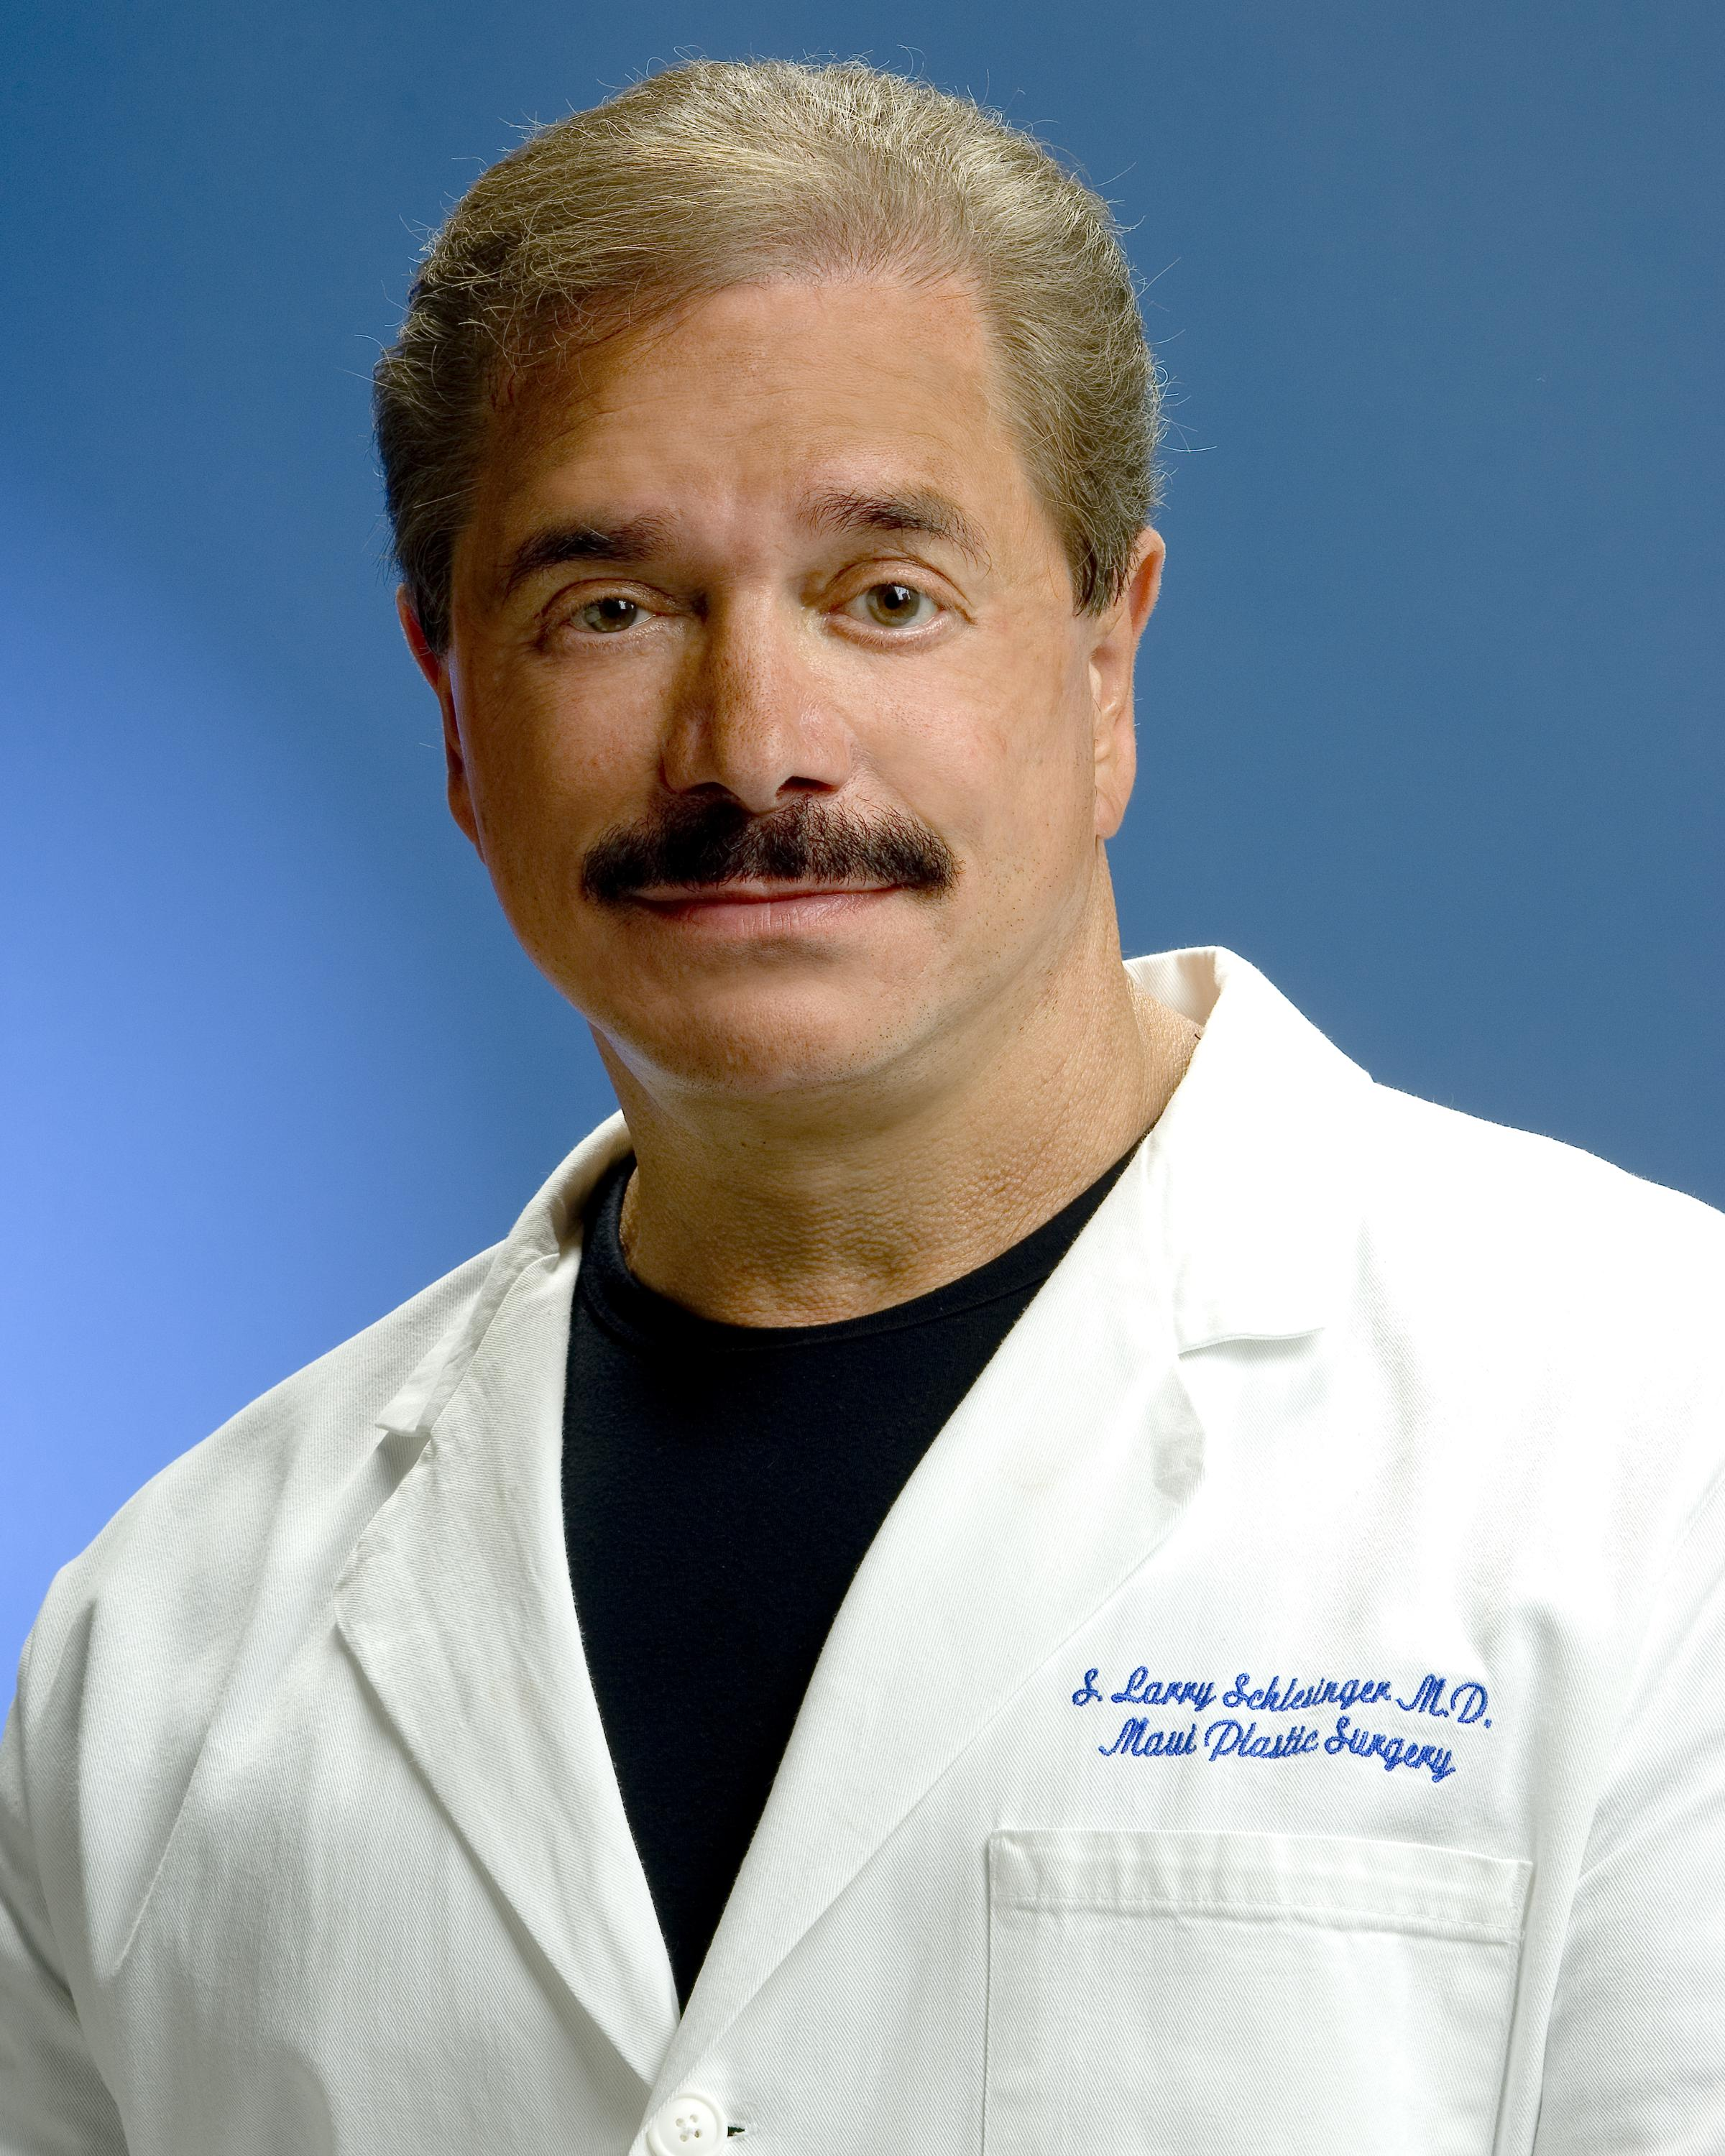 S. Larry Schlesinger, MD